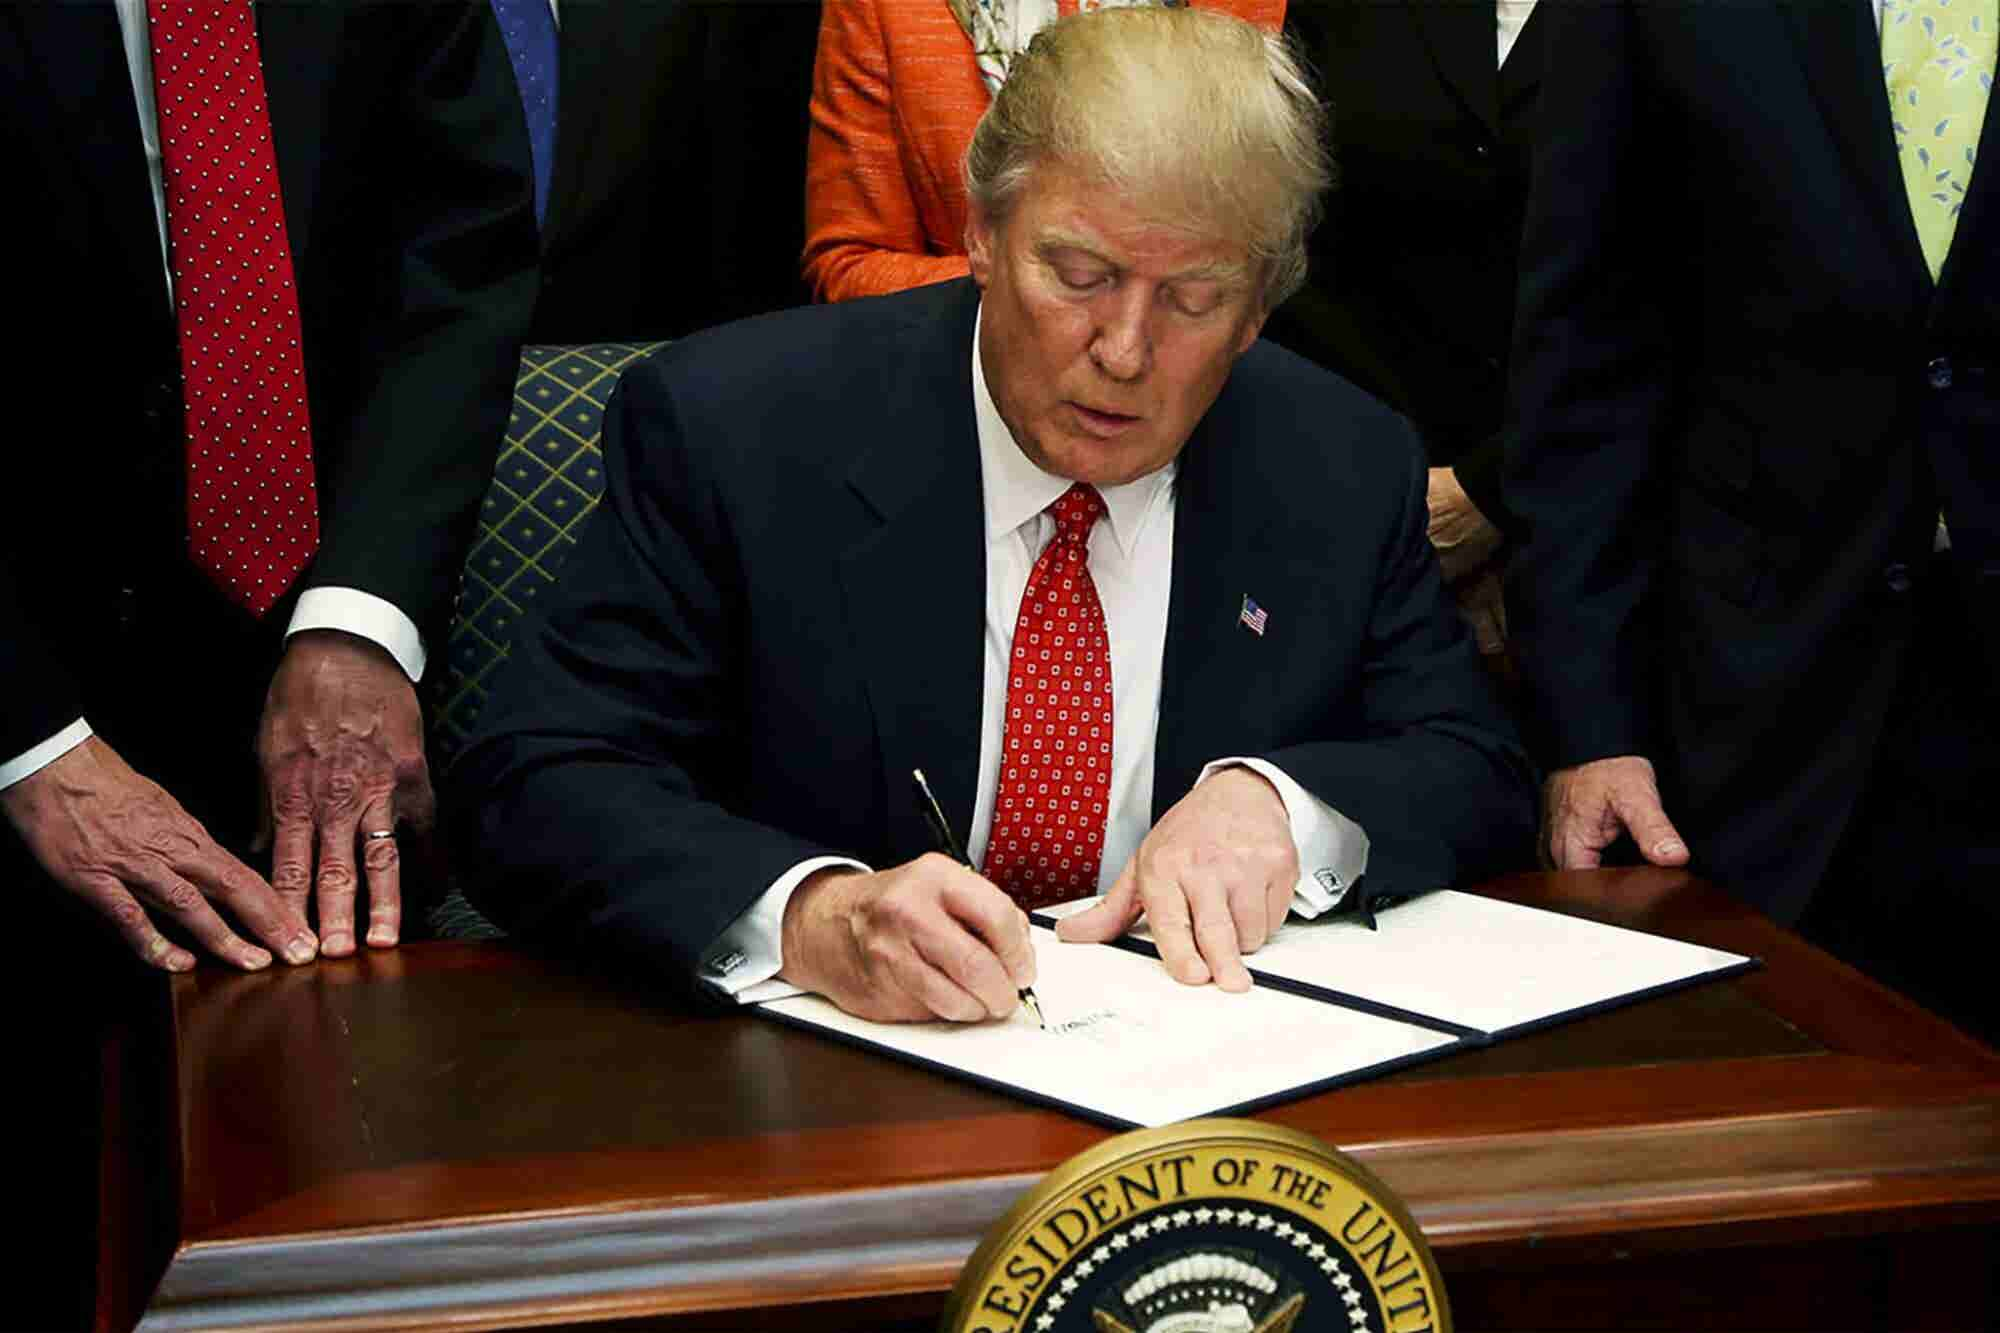 President Trump Signs Executive Order Establishing the 'American AI Initiative'